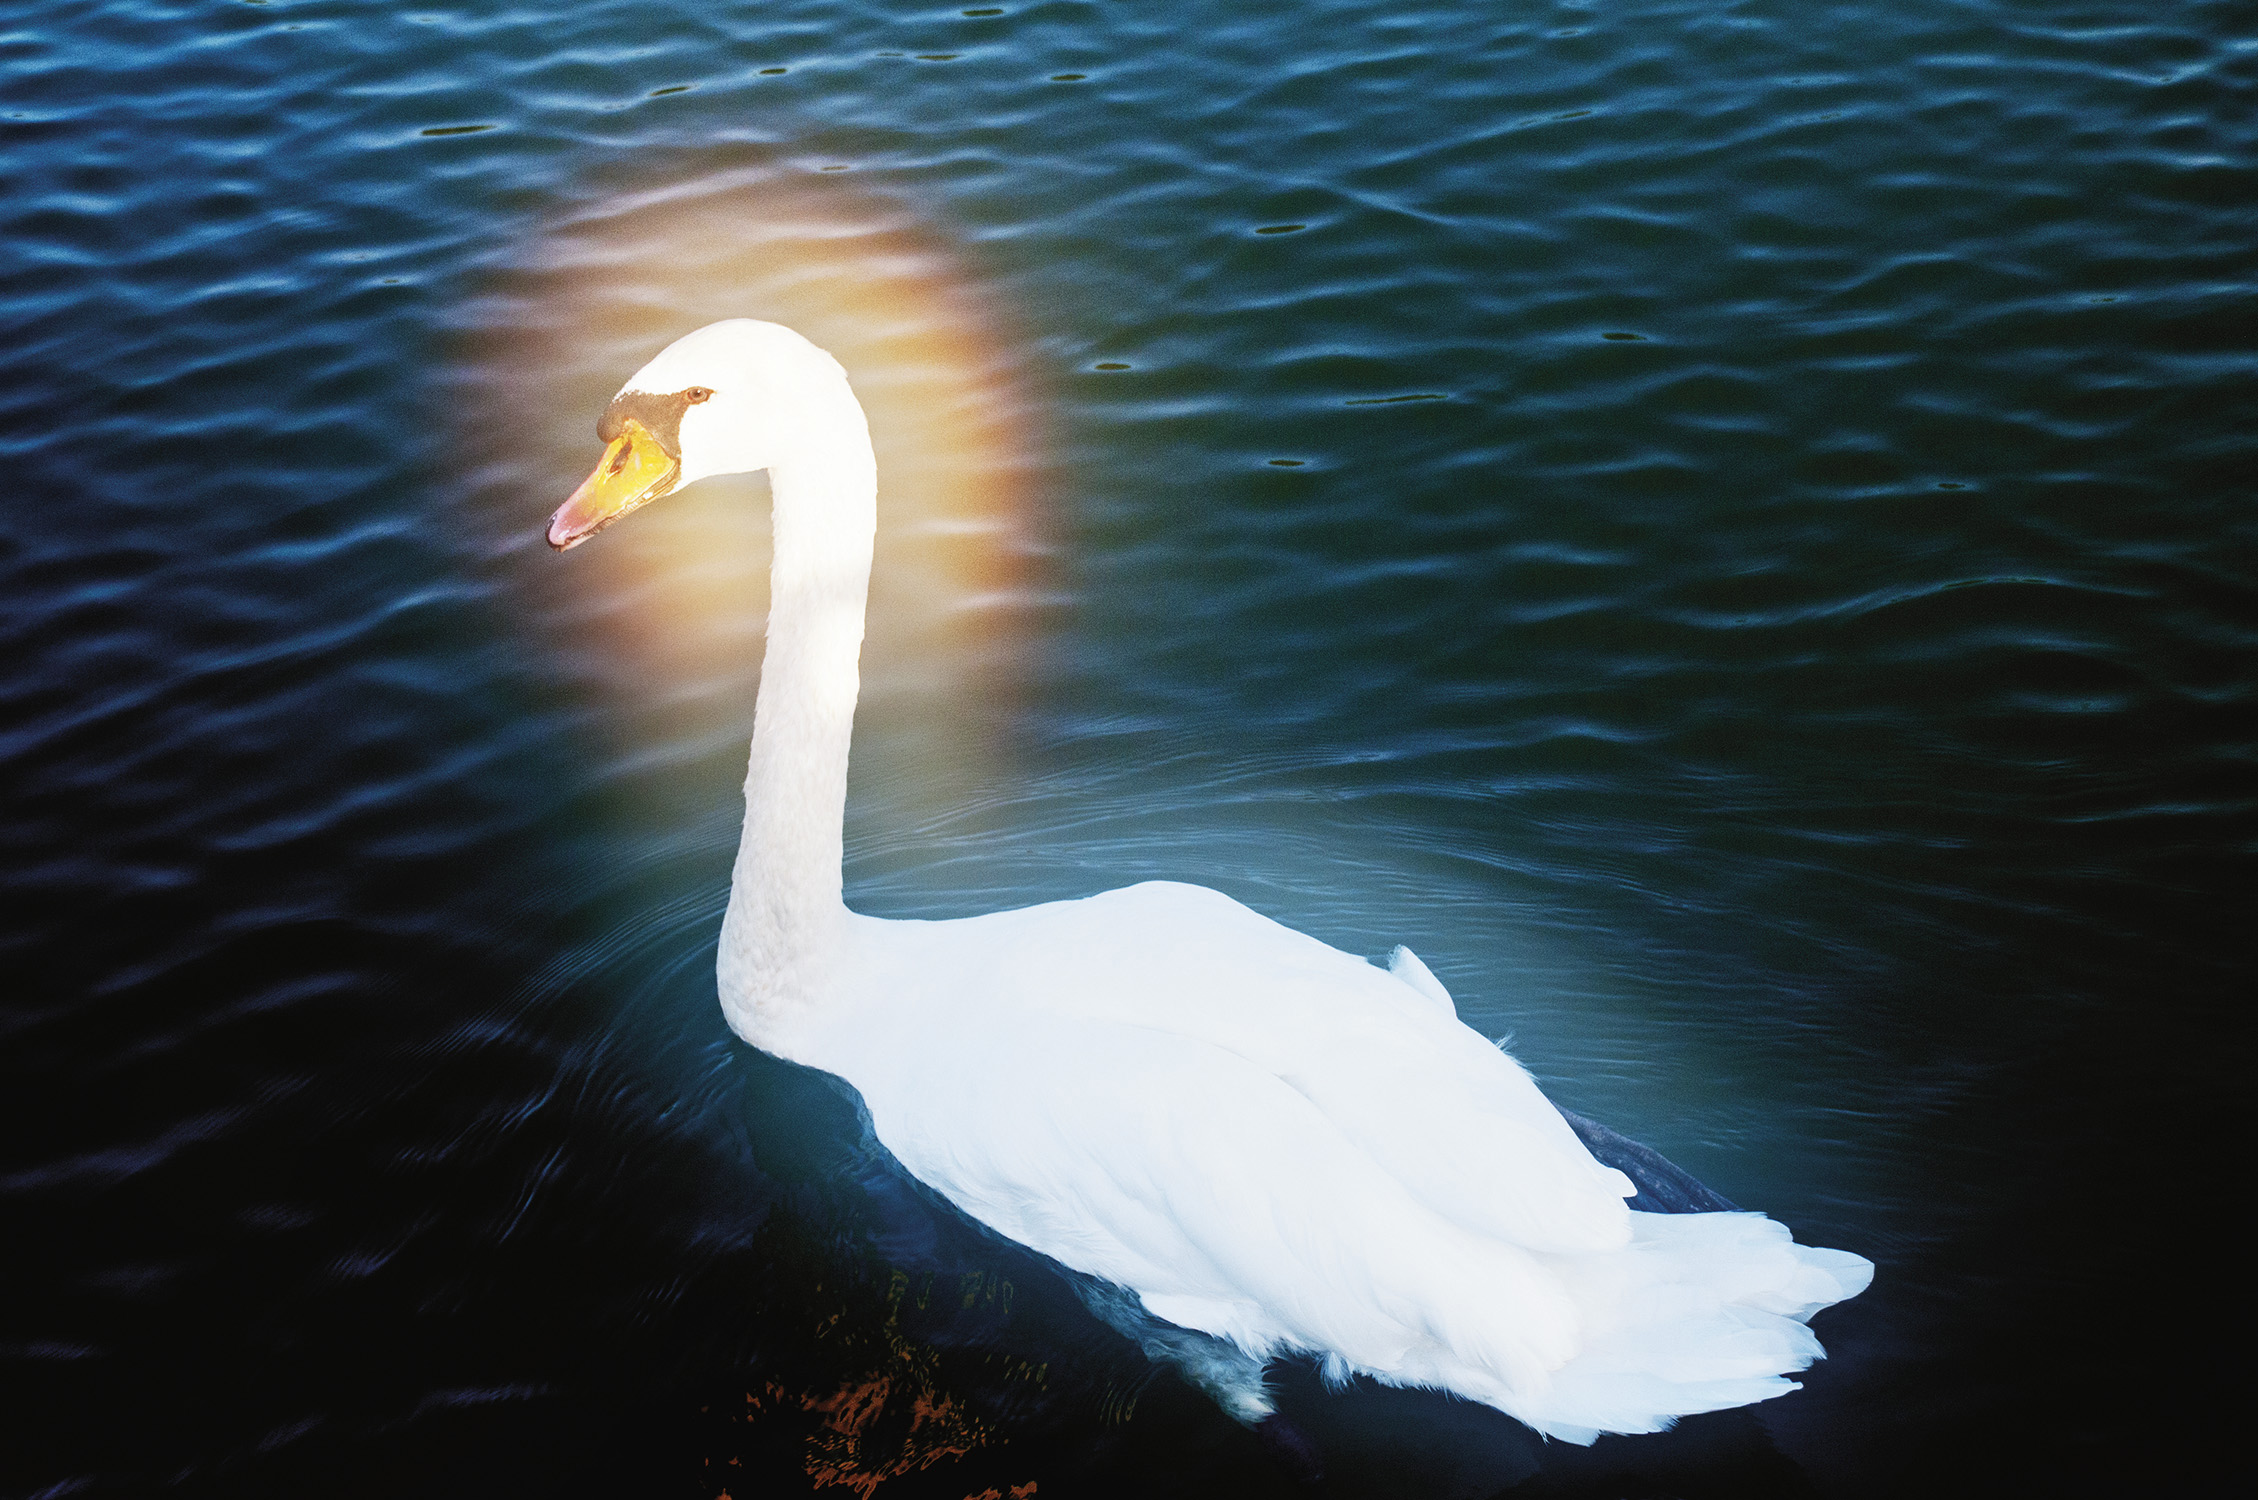 Swan on Lake Cassadaga, Lily Dale, New York, 2010. From Séance by Shannon Taggart